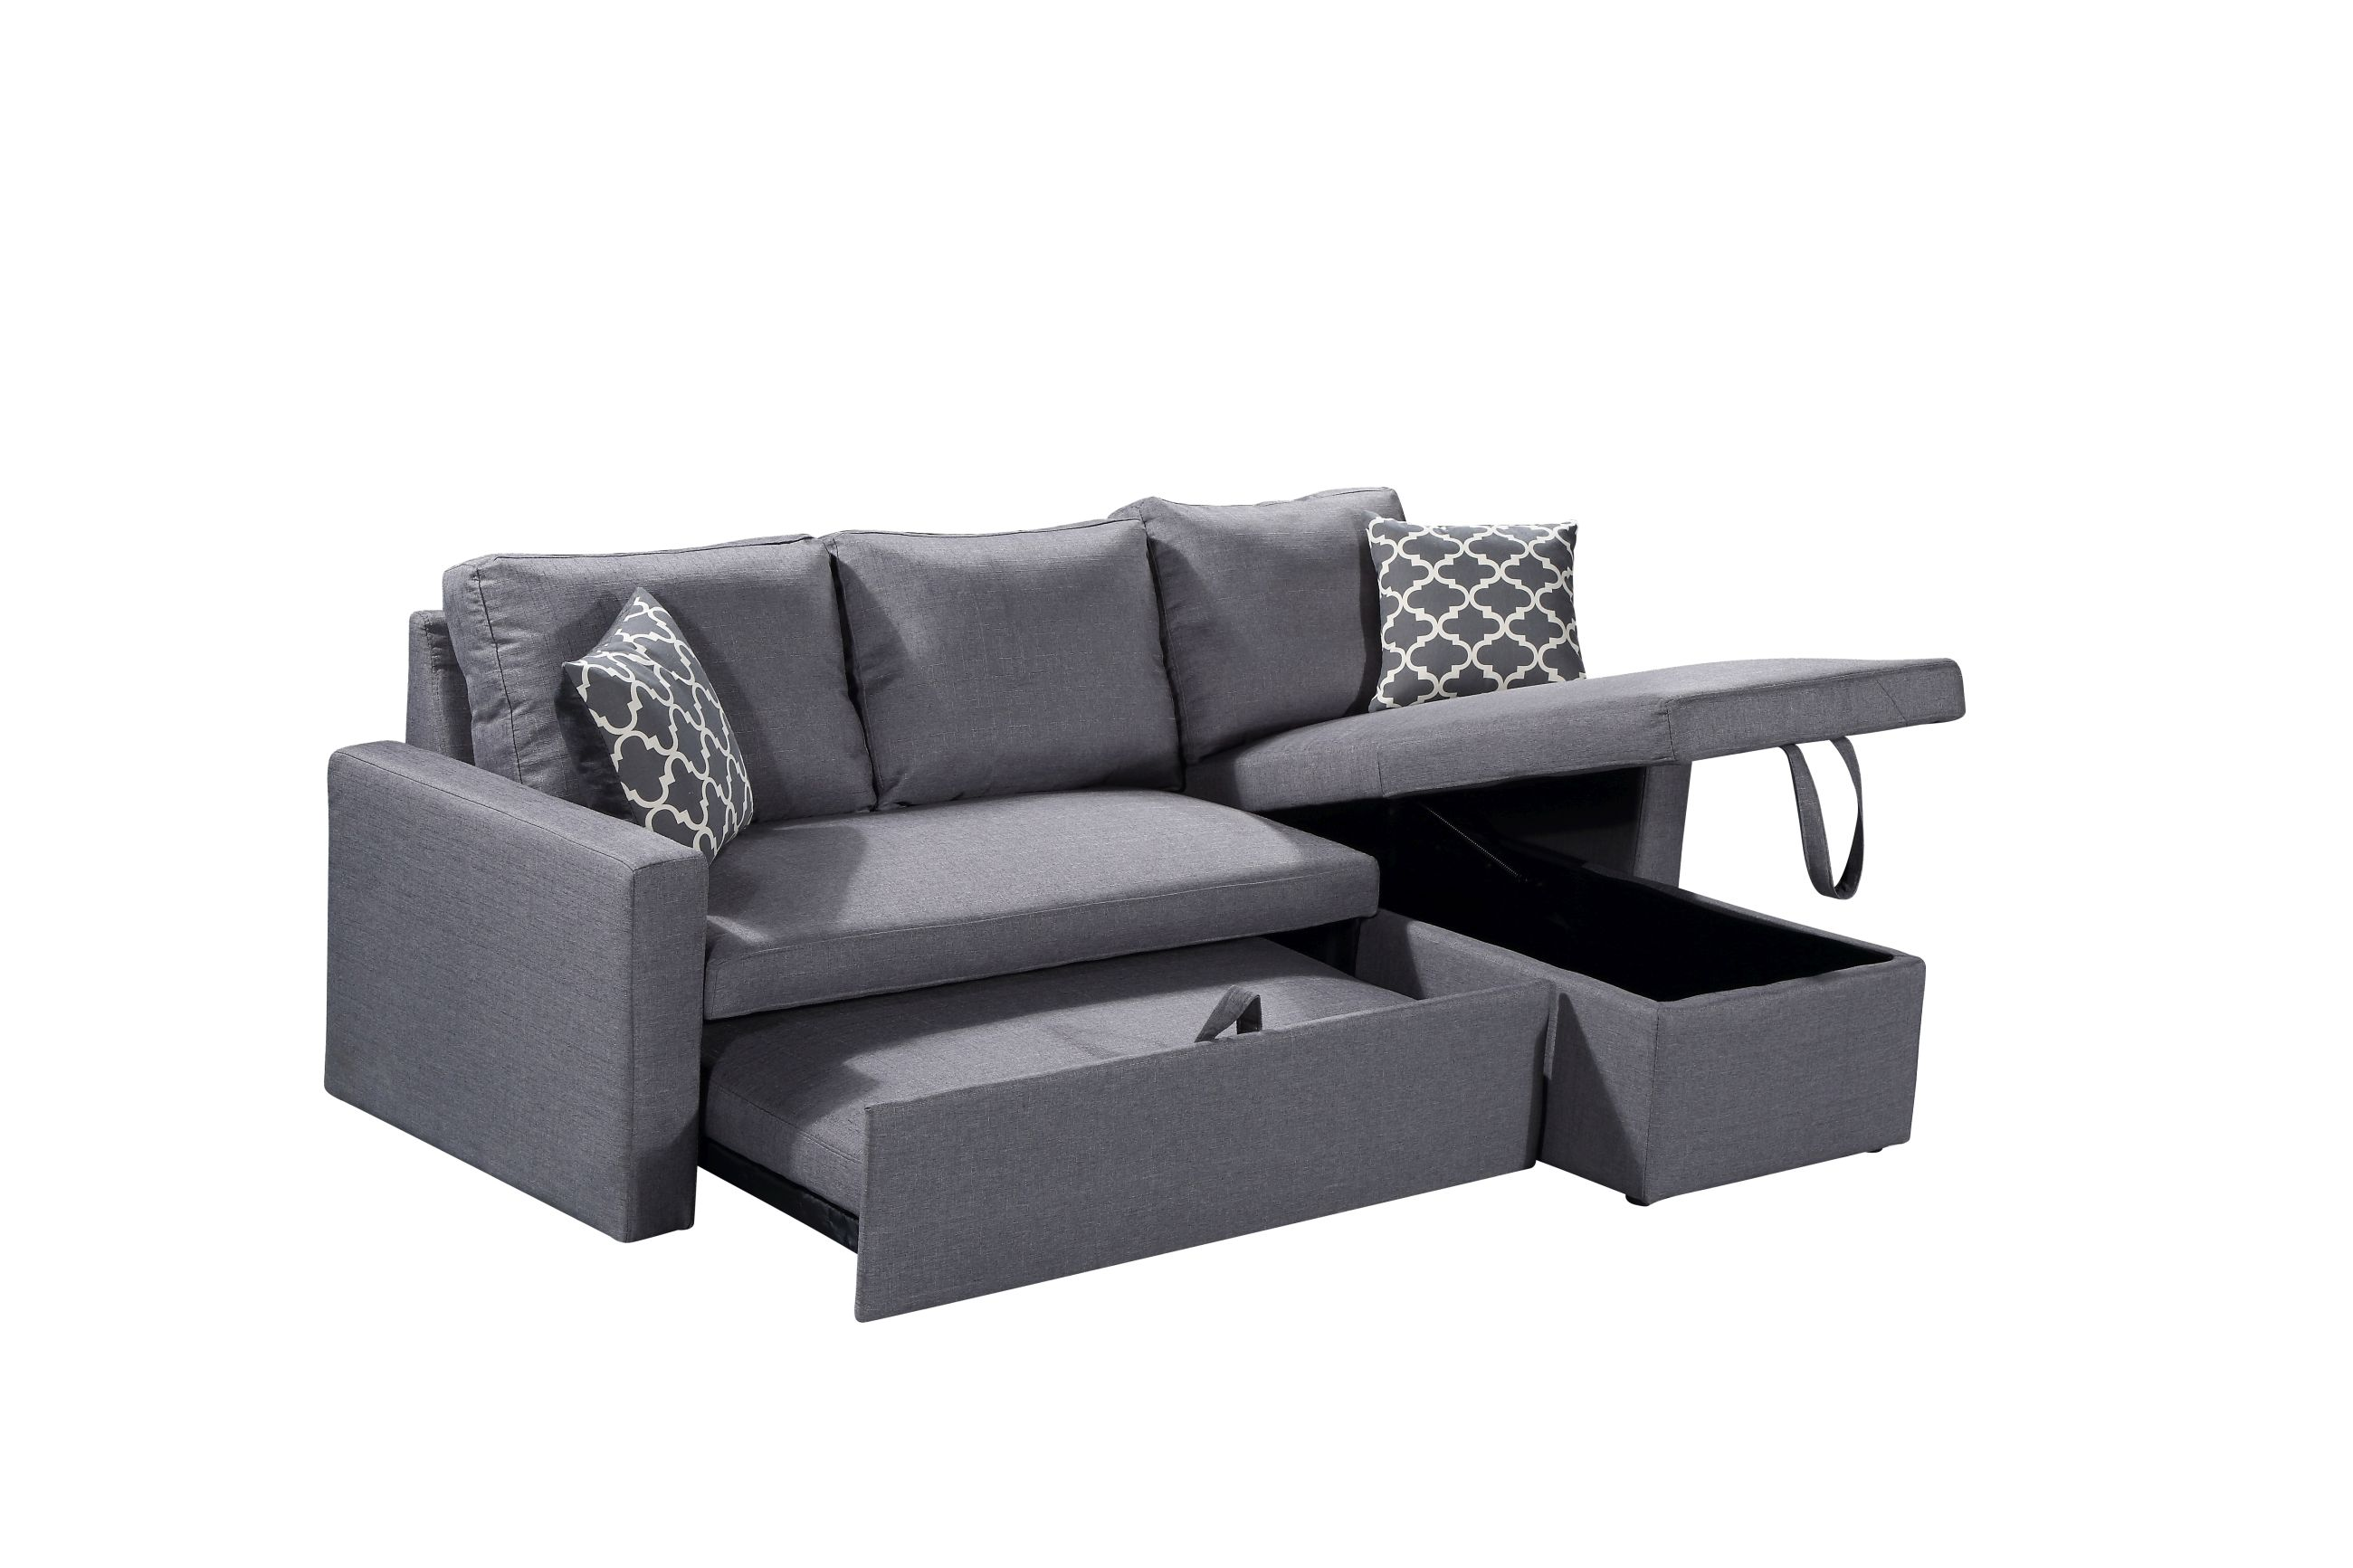 zara reversible sectional sofa 3in1 sofa bed With 3 in 1 sofa bed